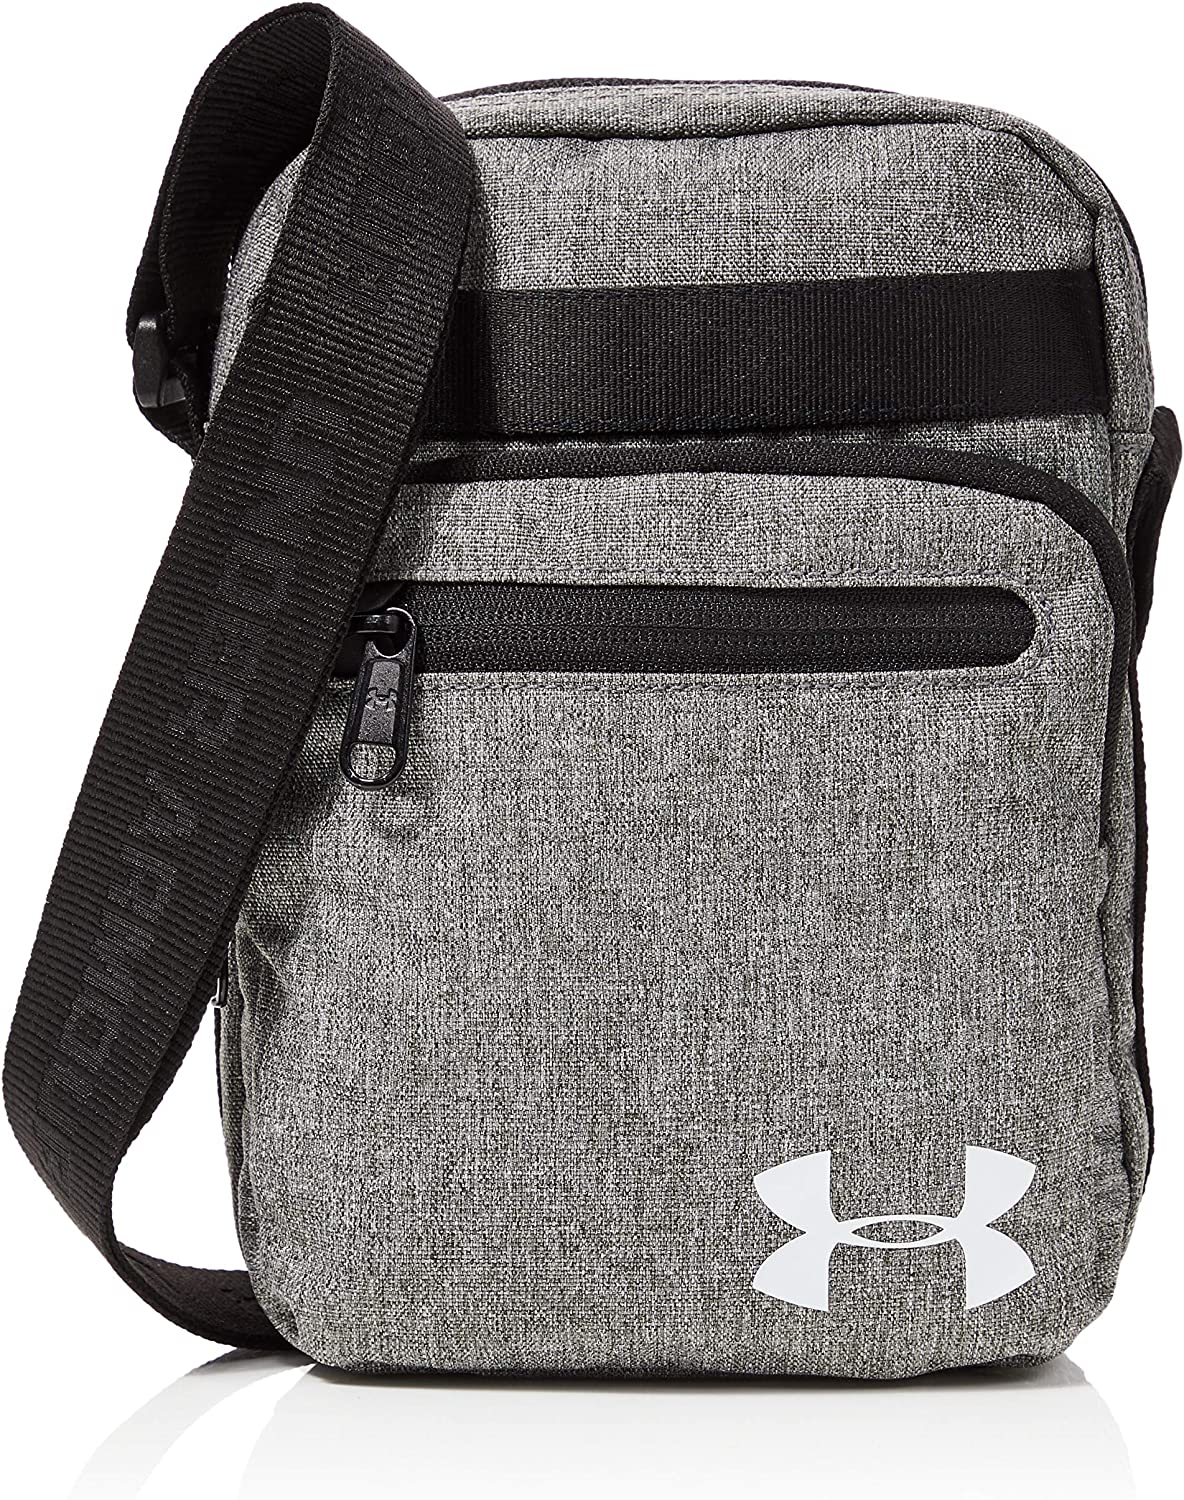 Under Armour 1327794-310 Unisex Adult Bag One Size Grey